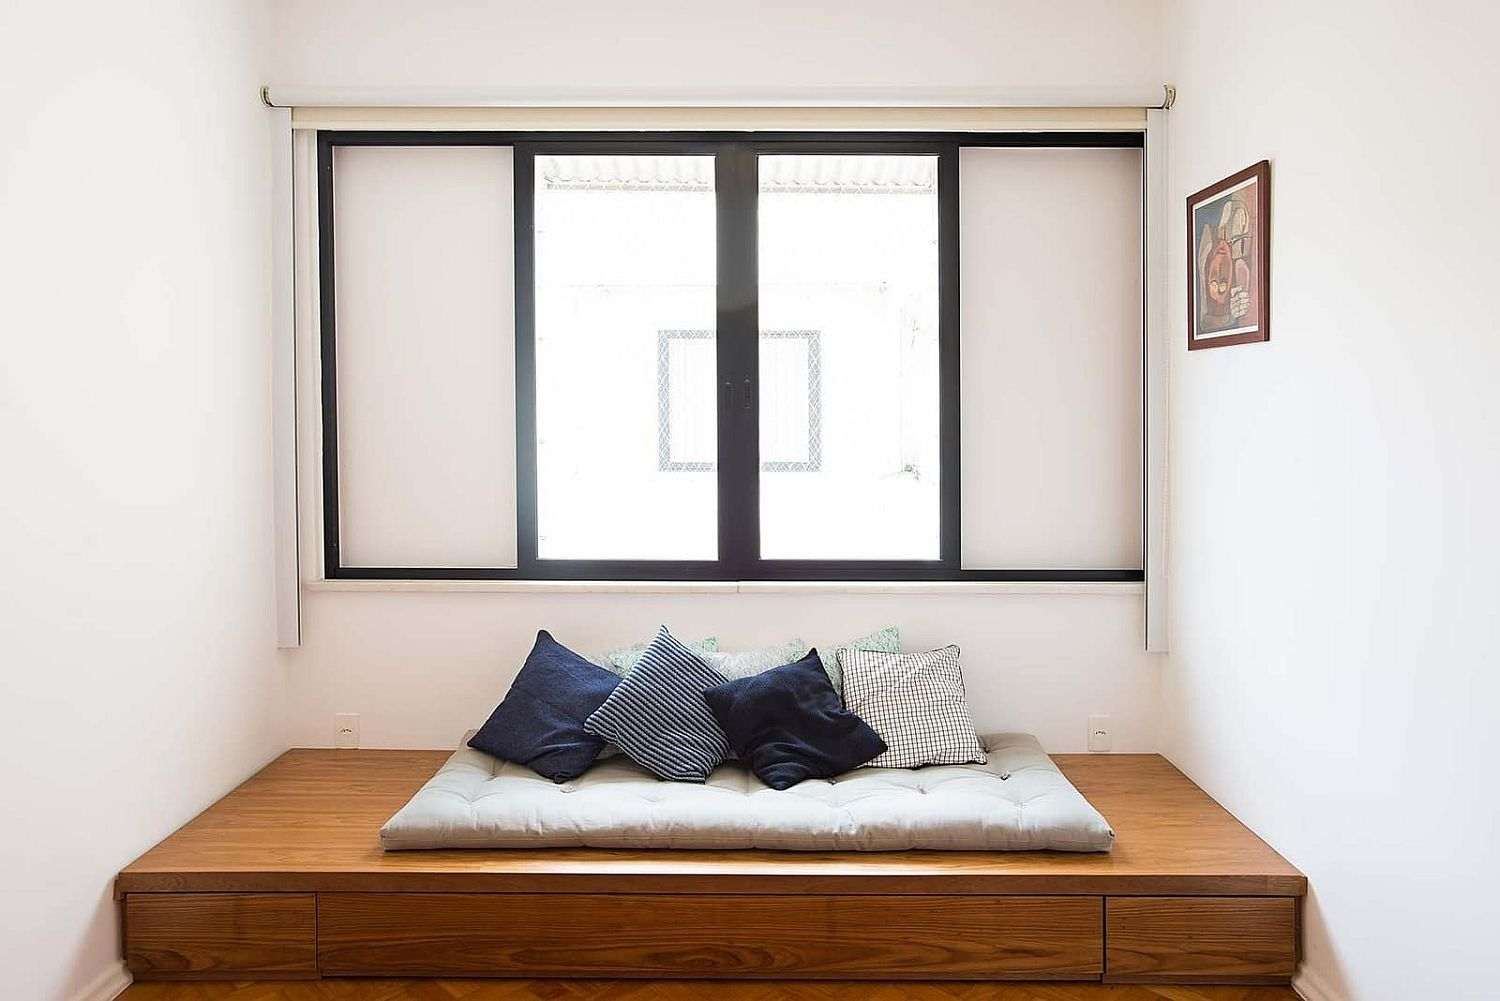 Elevated platform next to the window provides great space for a minimal bed